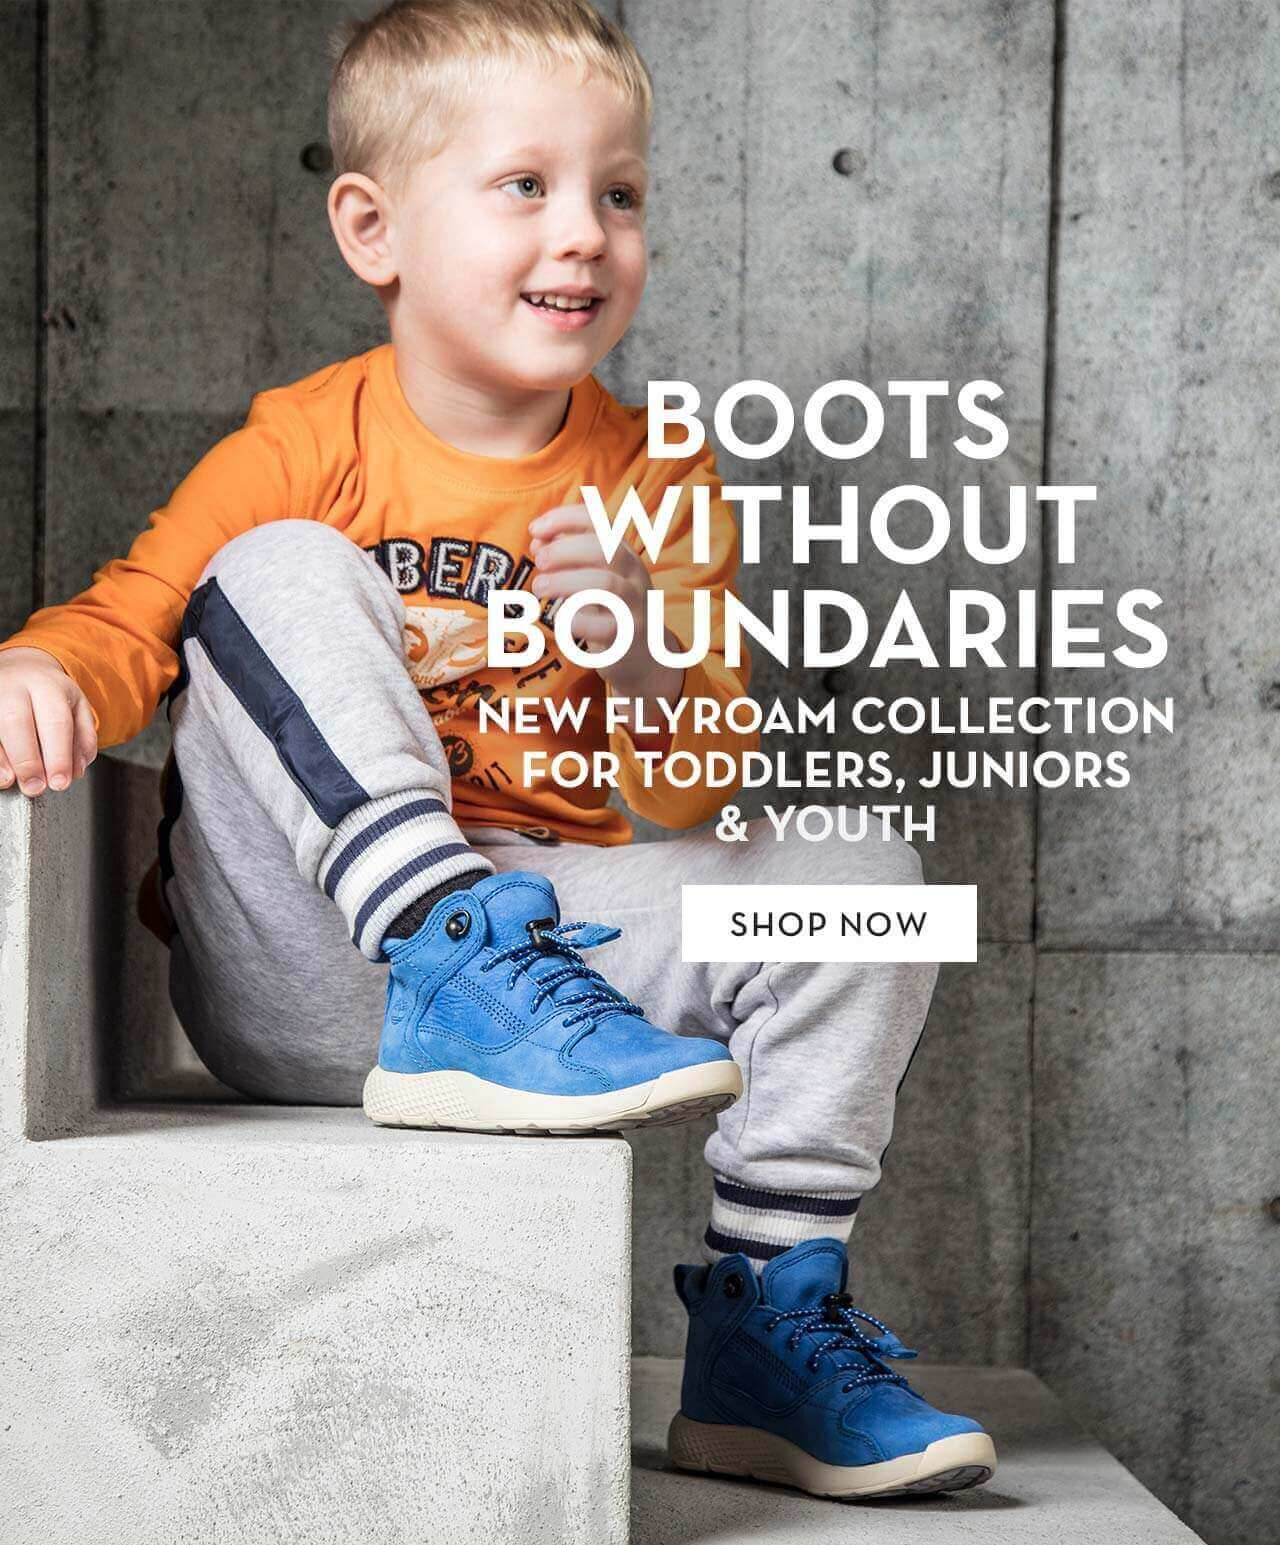 Boots Without Boundaries New FlyRoam Collection For Toddlers, Juniors & Youth Shop Now